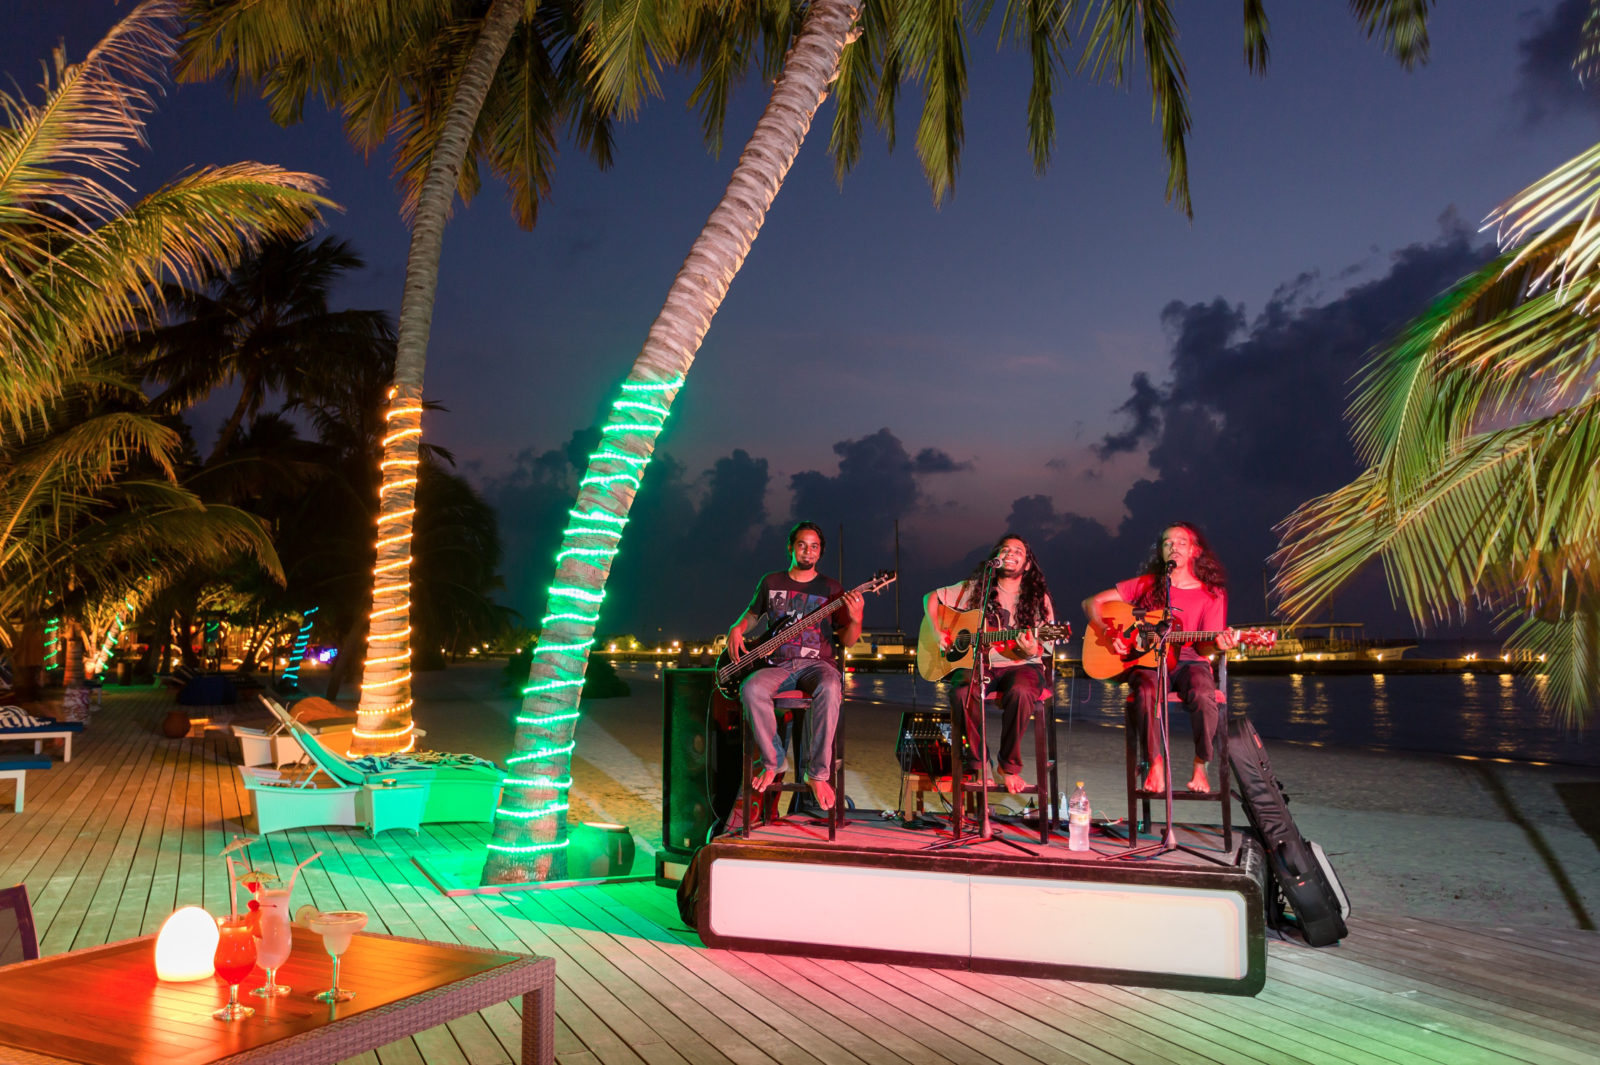 Evening concert for vacationers